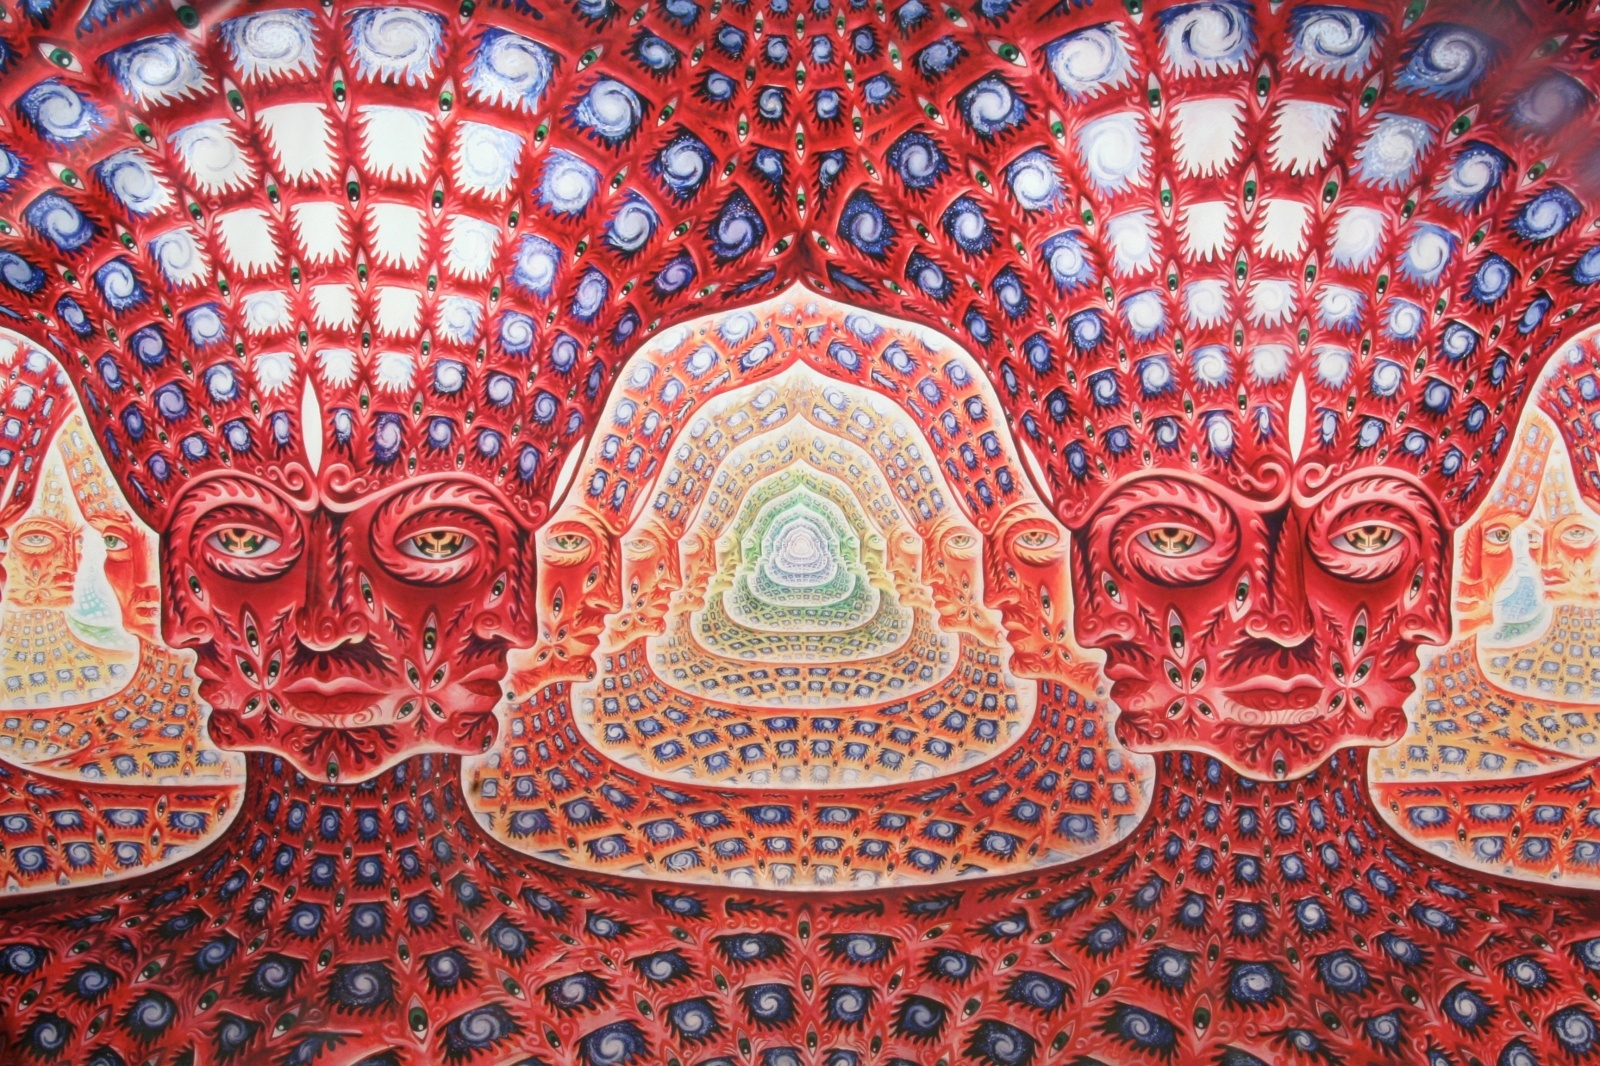 alex grey Alex grey (born november 29, 1953) is an american visionary artist, author, teacher, and vajrayana practitioner his body of work spans a variety of forms including performance art, process art, installation art, sculpture, visionary art, and paintinggrey is a member of the integral institutehe is also on the board of advisors for the center.